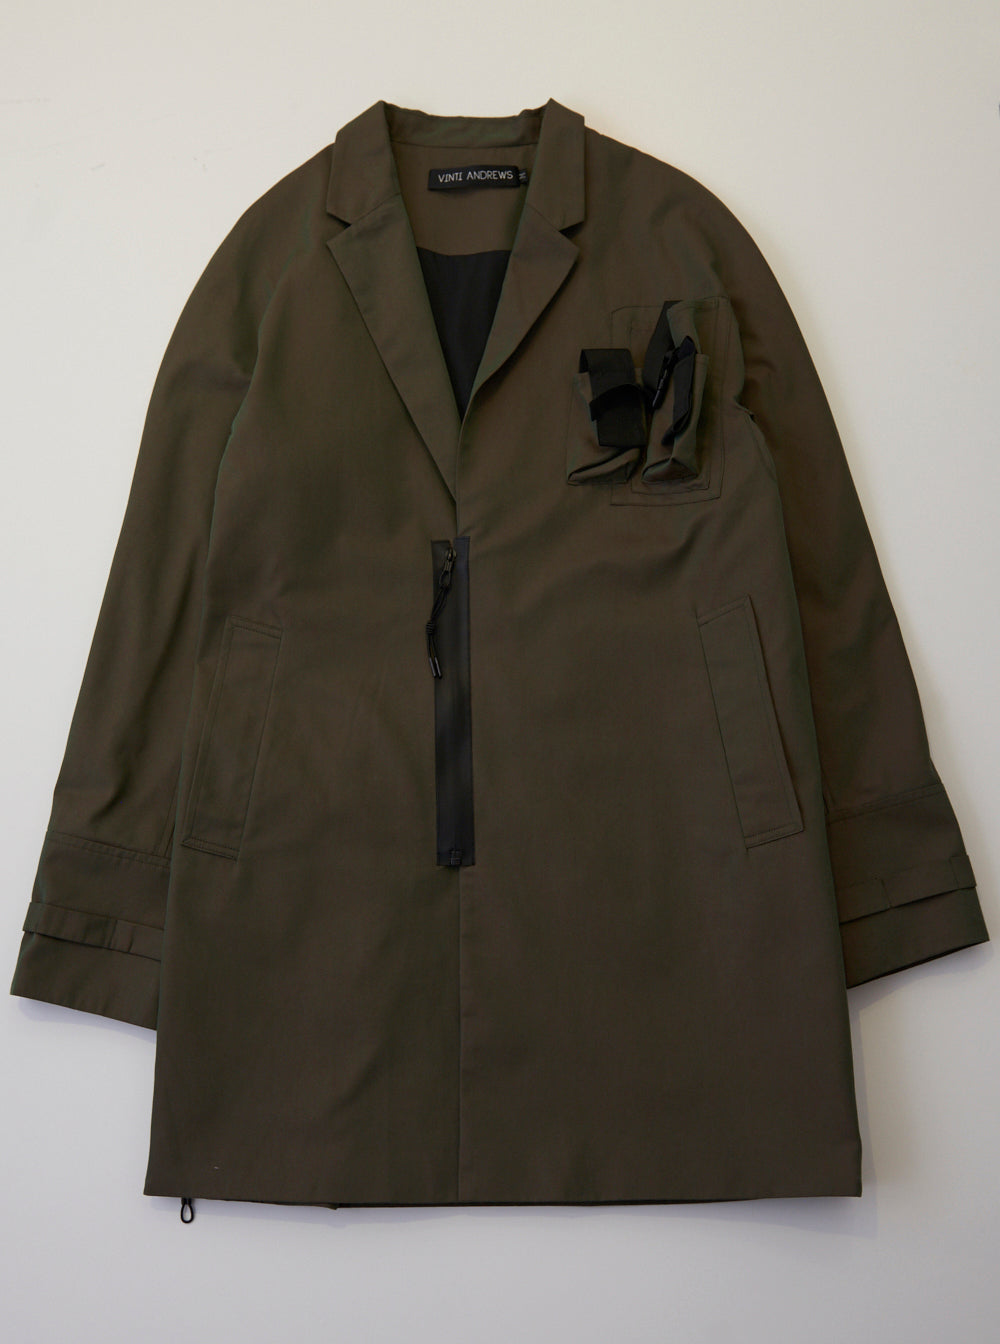 Vinti Andrews Tailor Coat Khaki